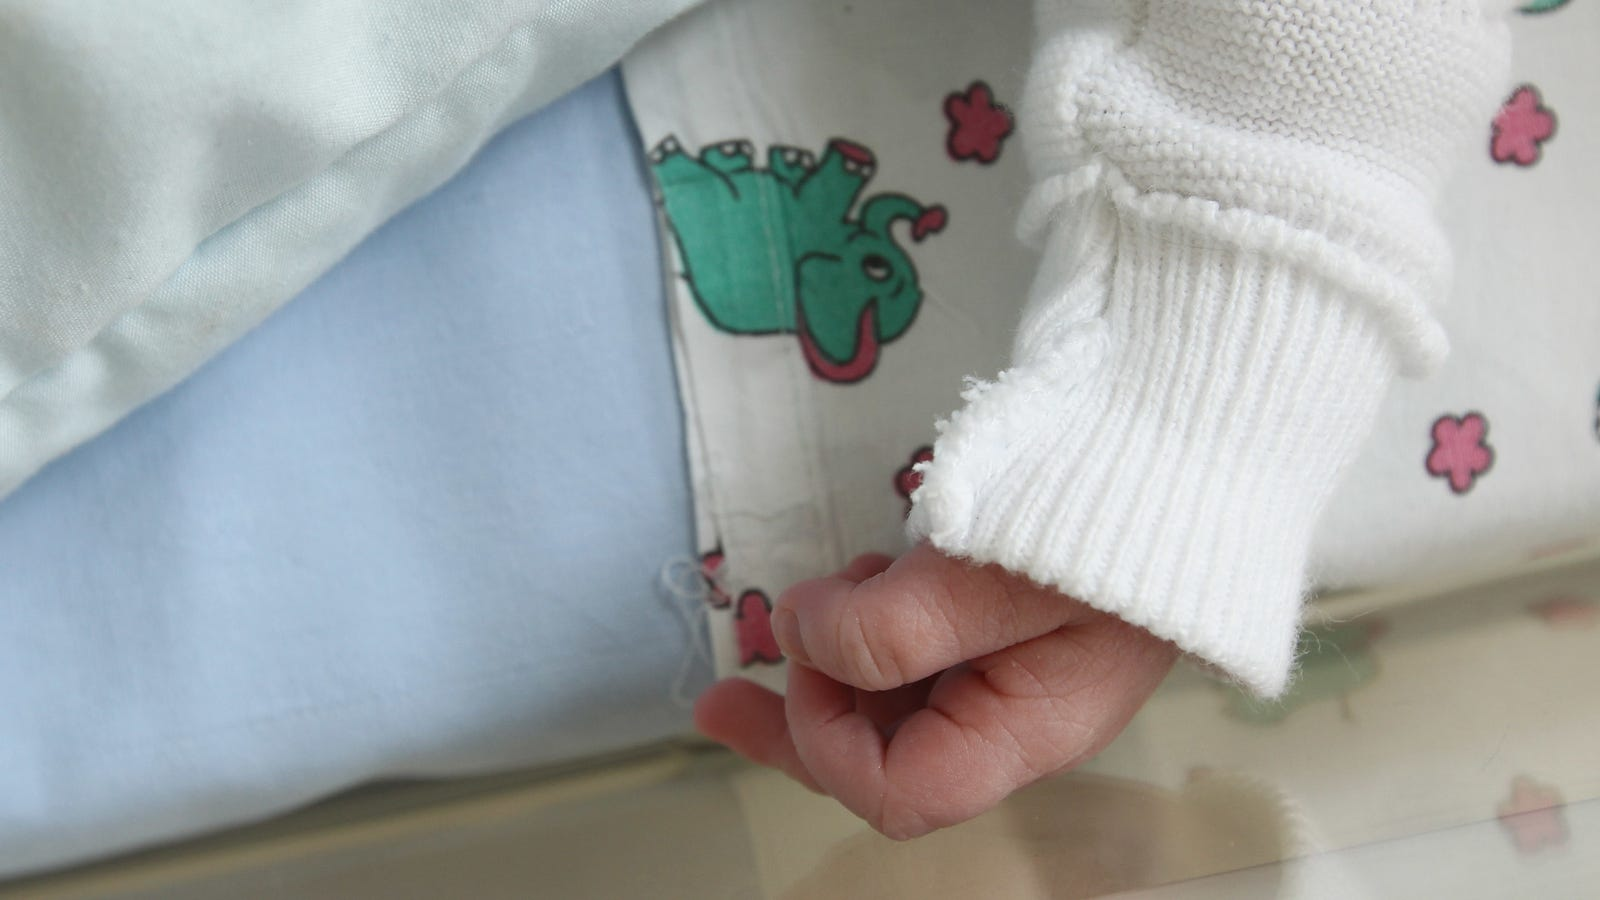 People Born Prematurely May Have More Romantic Difficulty as Adults, Research Study Finds